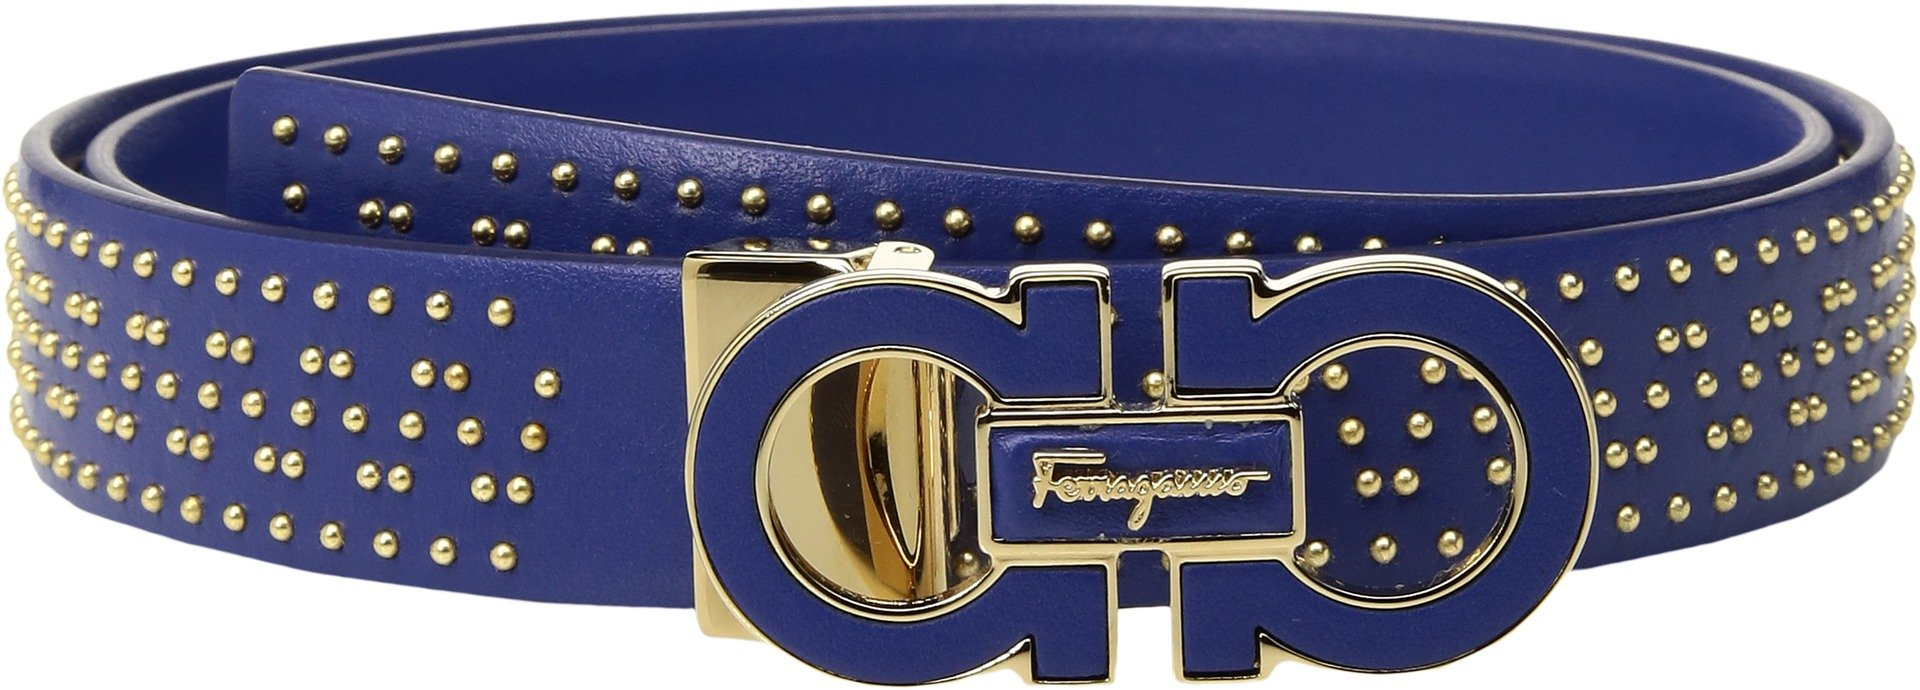 Salvatore Ferragamo Women's 23B452 Royal Belt